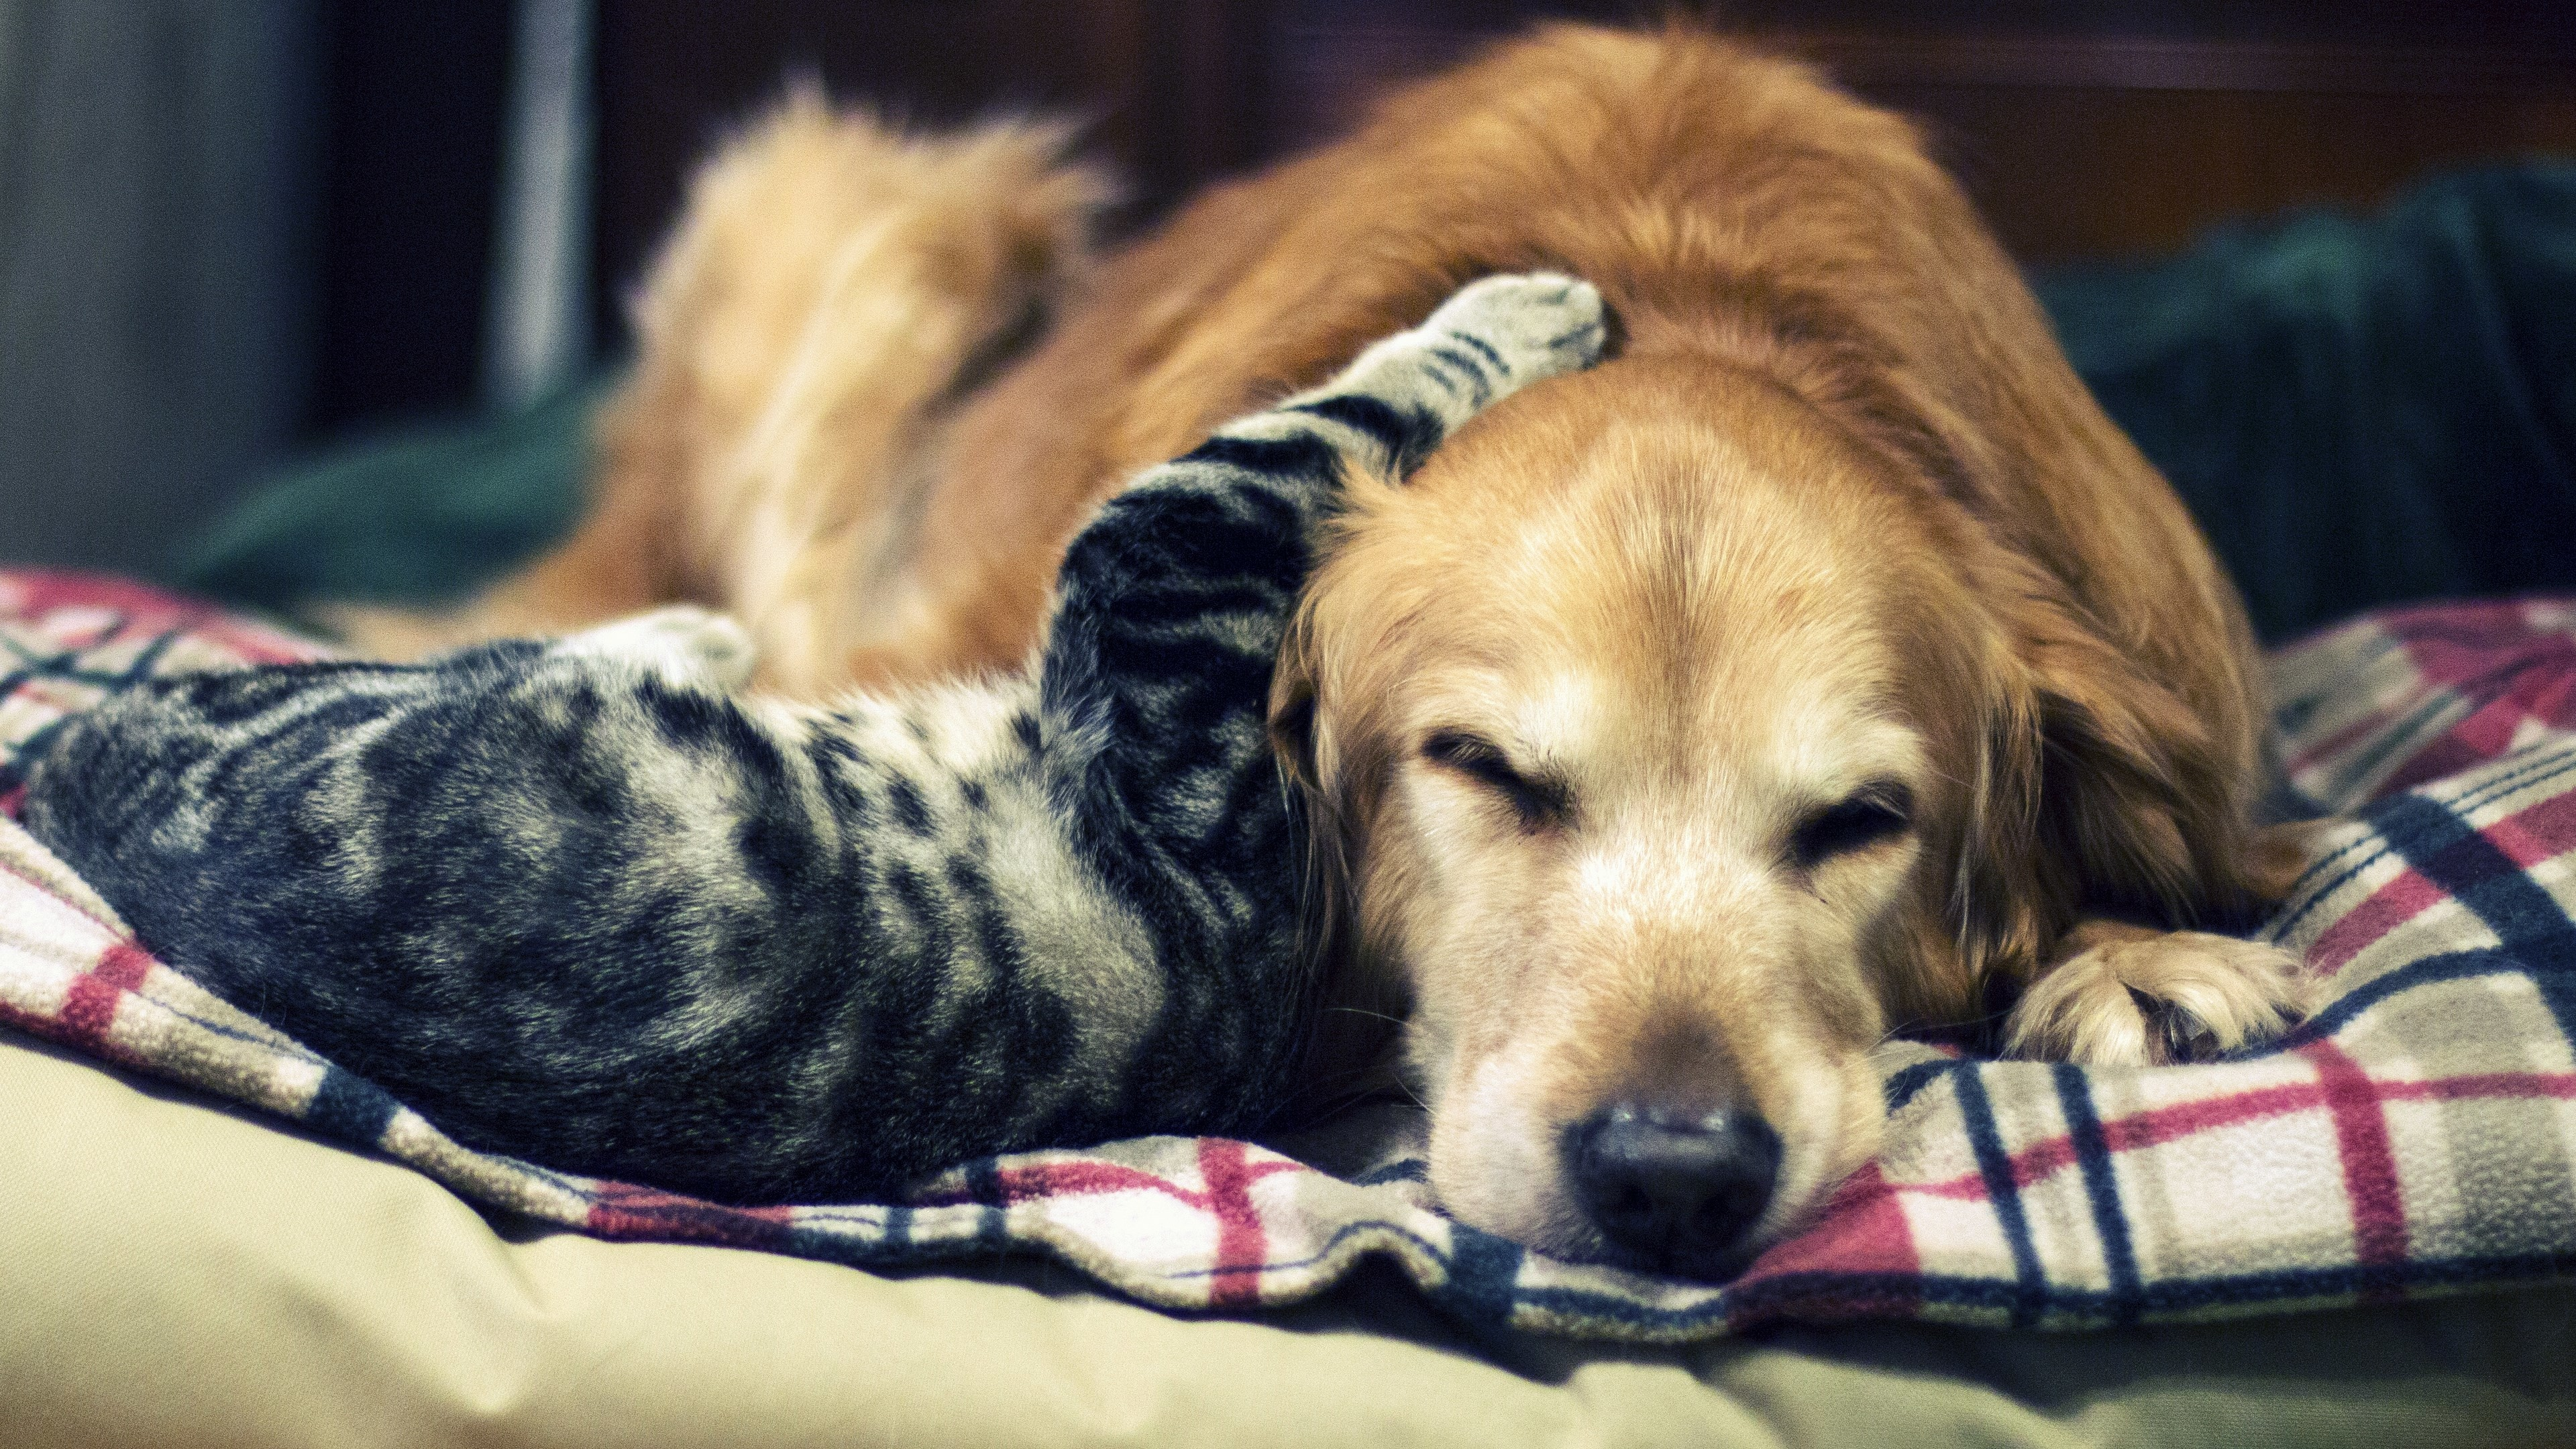 Cat and Dog Wallpaper 3840x2160